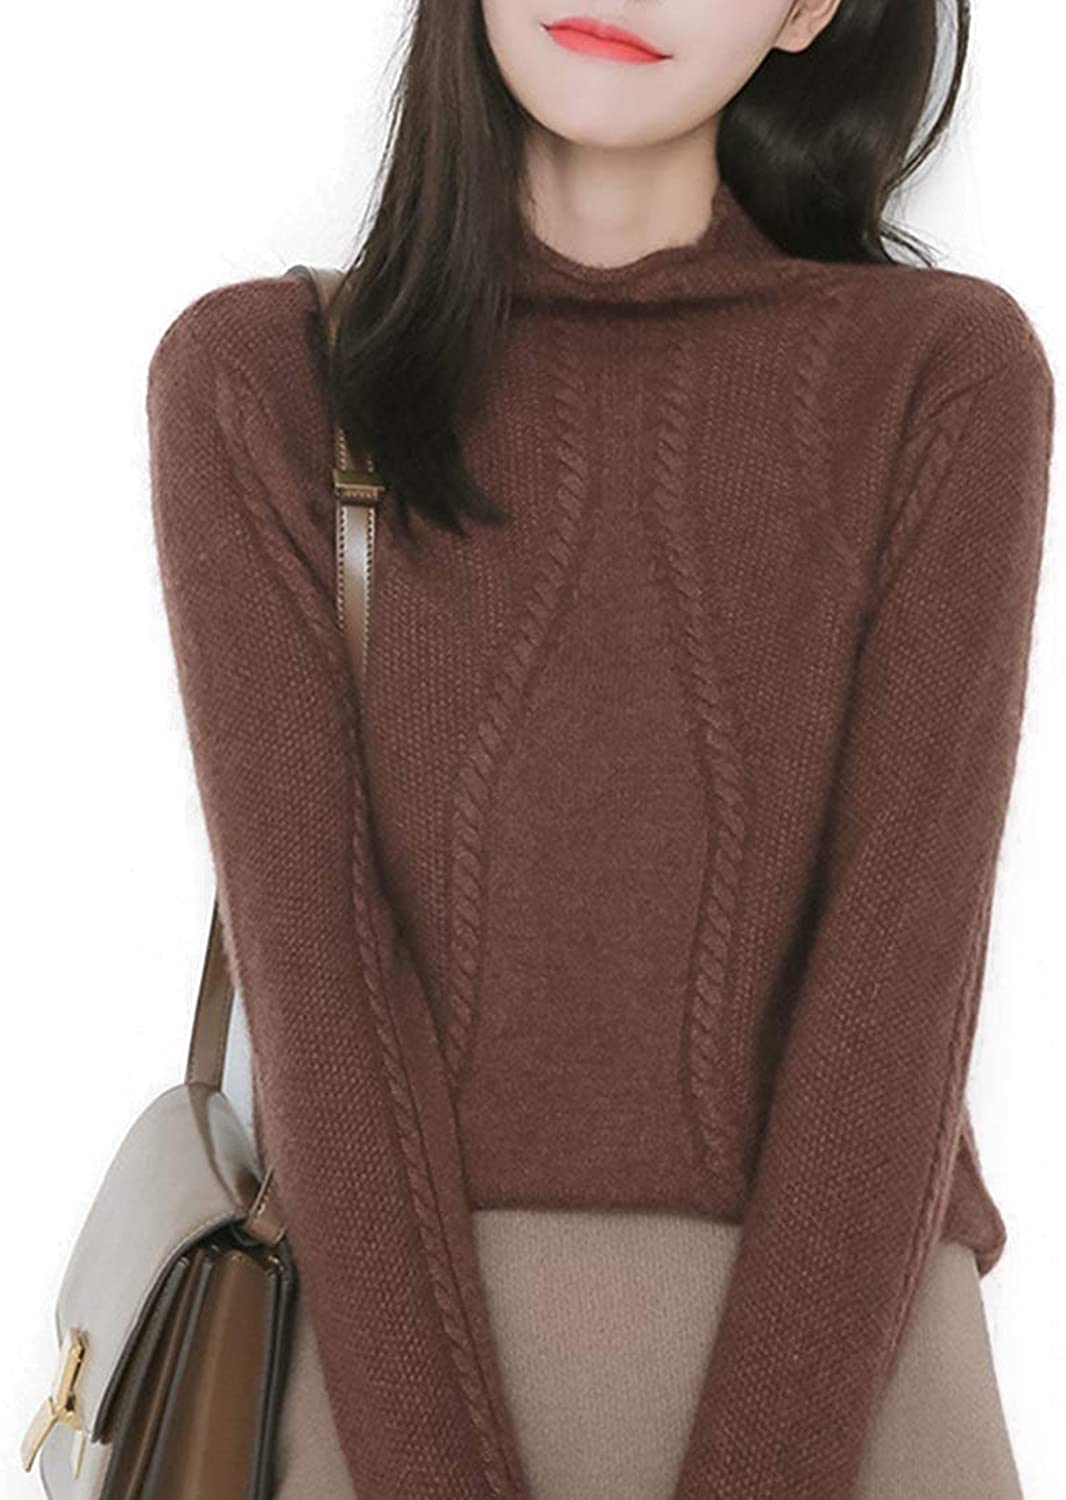 CTARCROW Long Sleeve Women's Knit Sweater High Collar Warm Thick Sweater (color   Coffee, Size   M)